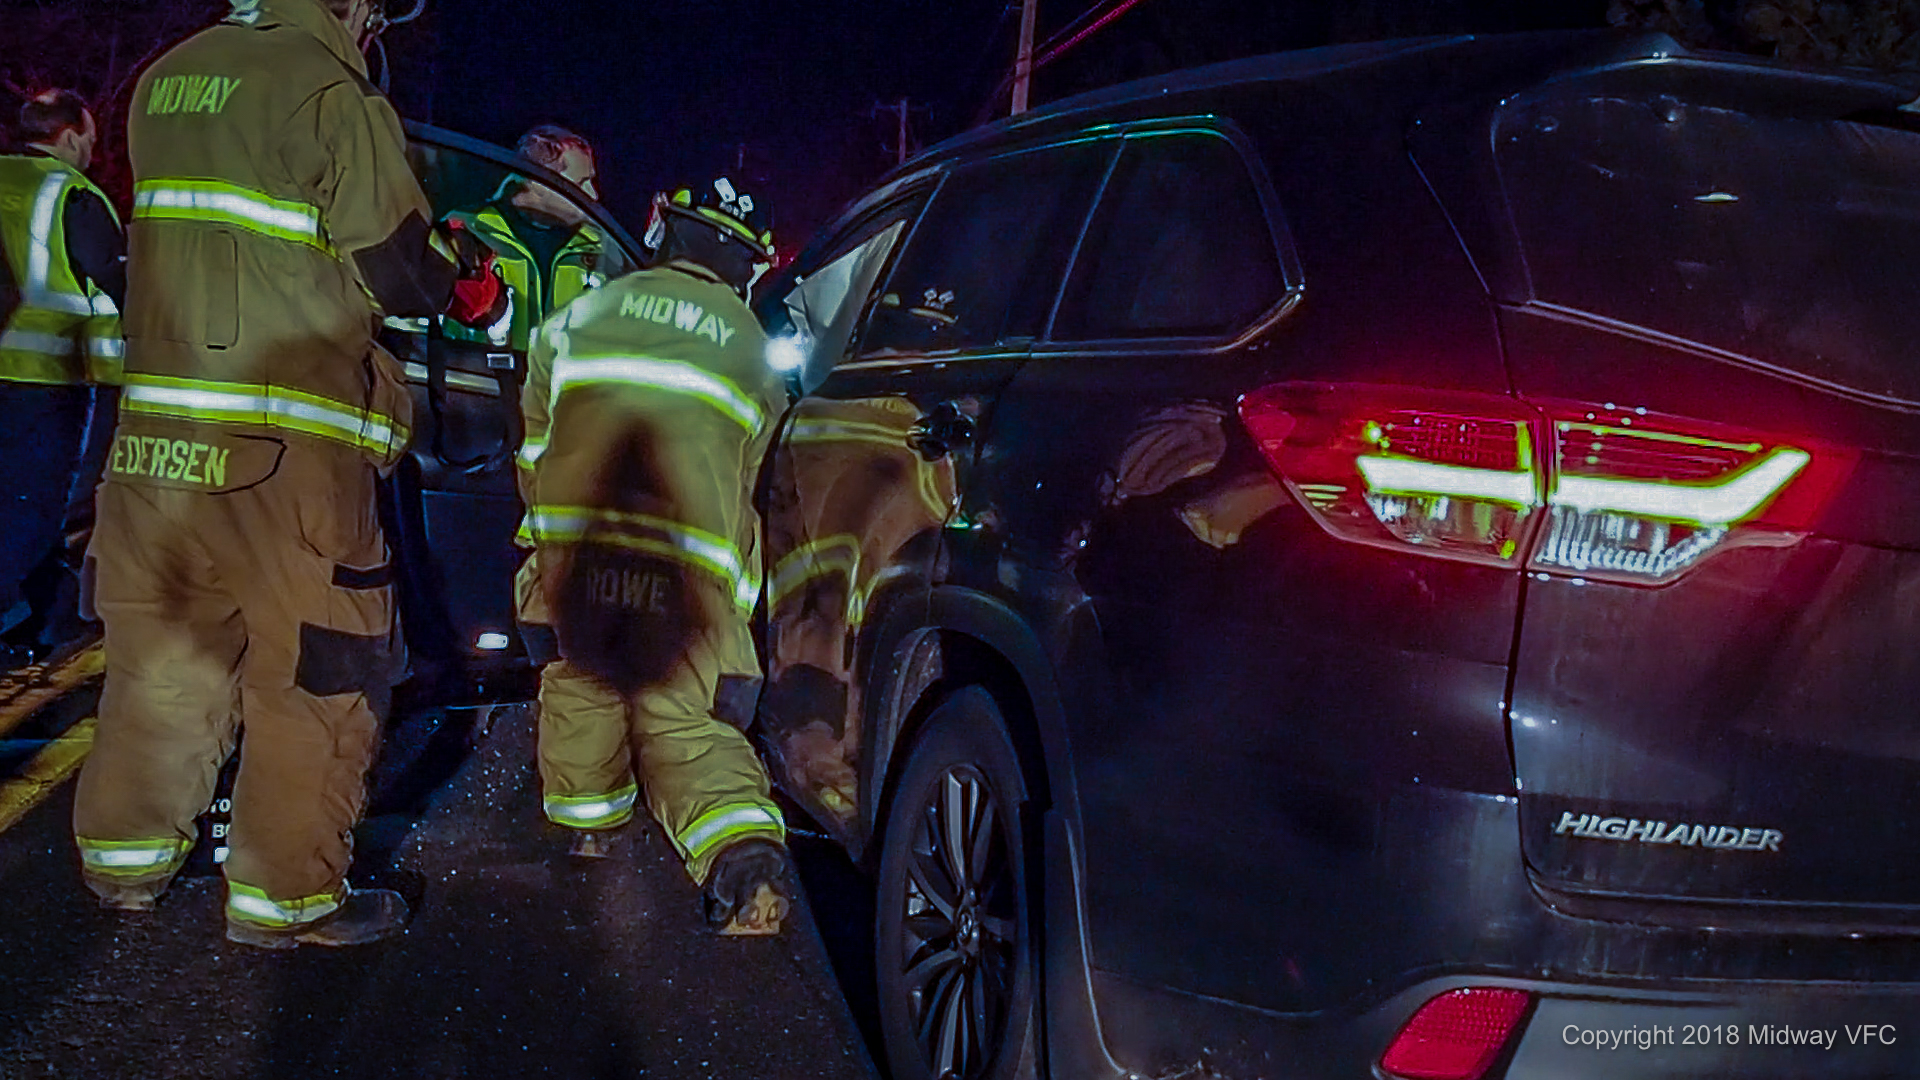 2018.02.28 at 10:00 PM Midway Volunteer Fire Company responded to an Auto Extrication on RT. 202 near Street Road in Solebury Township.After extrication all victims were treated at the scene.